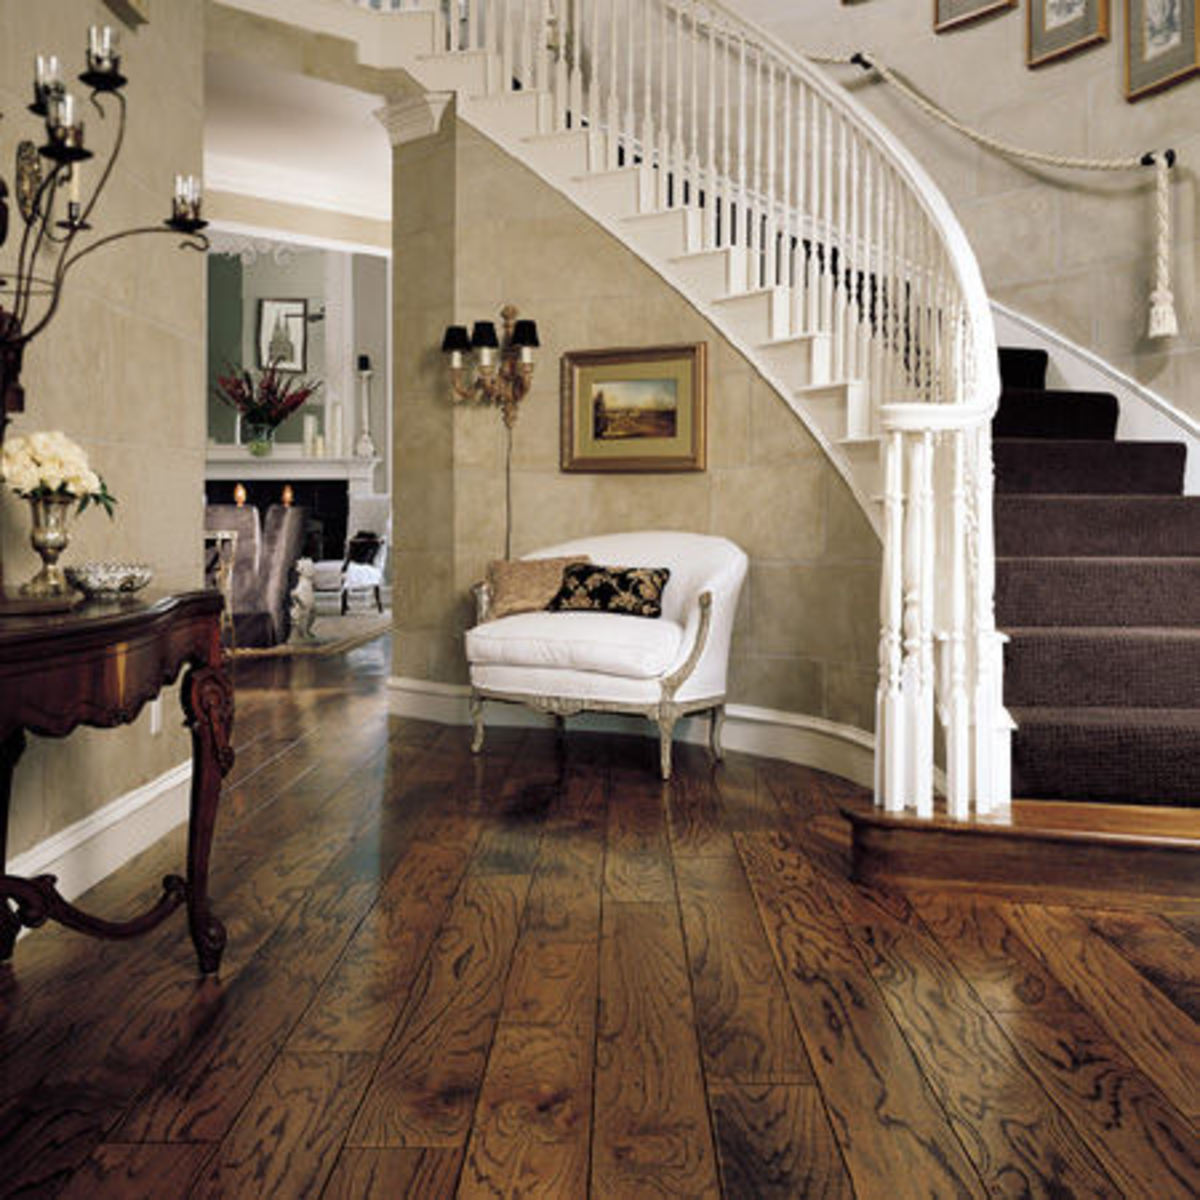 Residential Flooring Options Pros And Cons Each Pics Dengarden